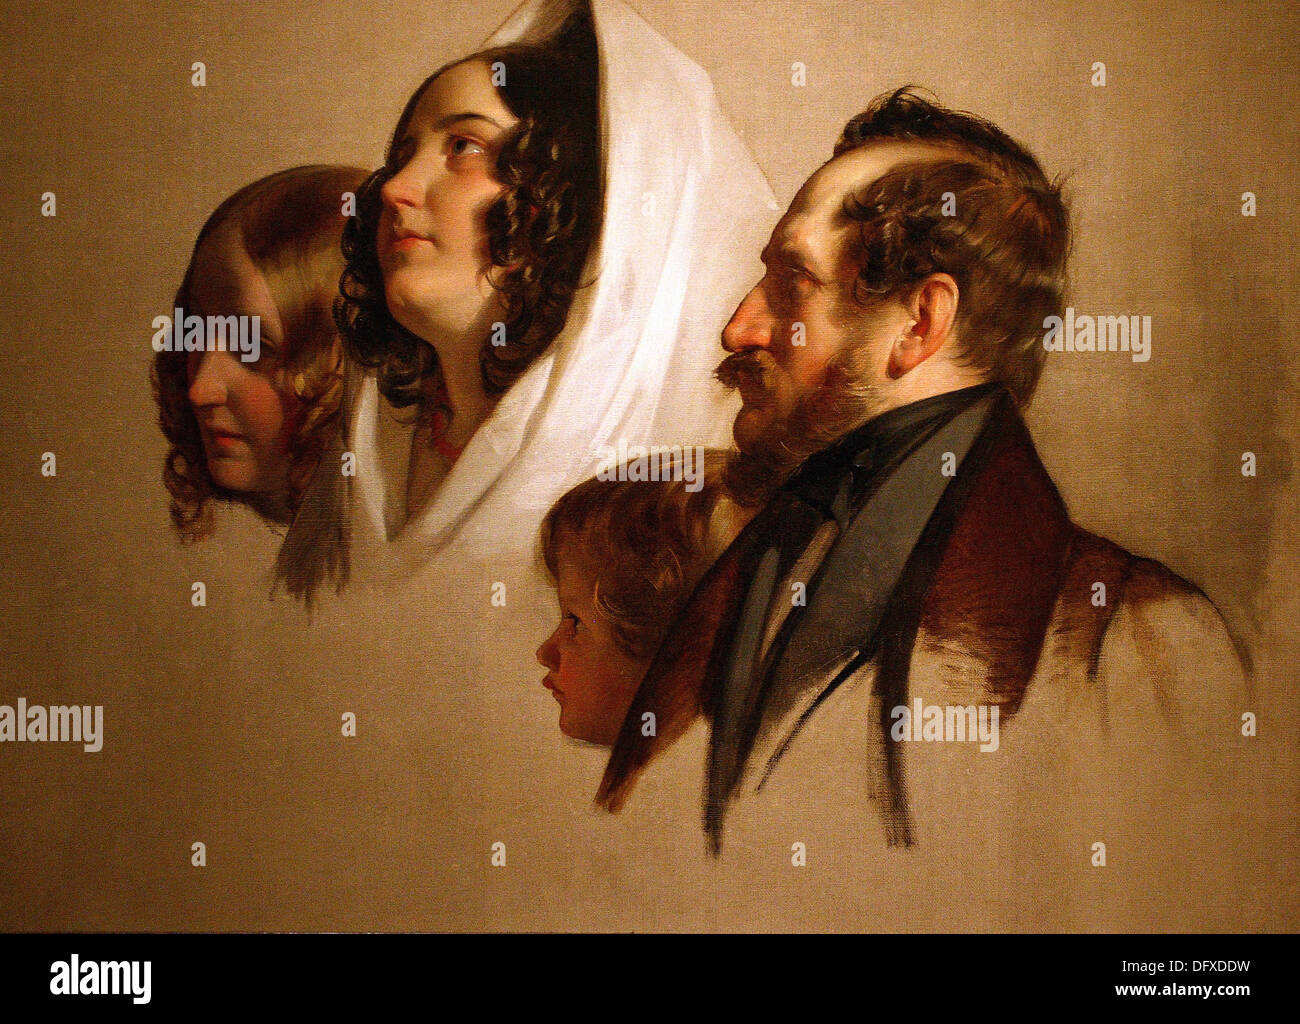 Friedrich von AMERLING - Portrait studies - 1830 - Museum of Fine Arts - Budapest, Hungary. - Stock Image